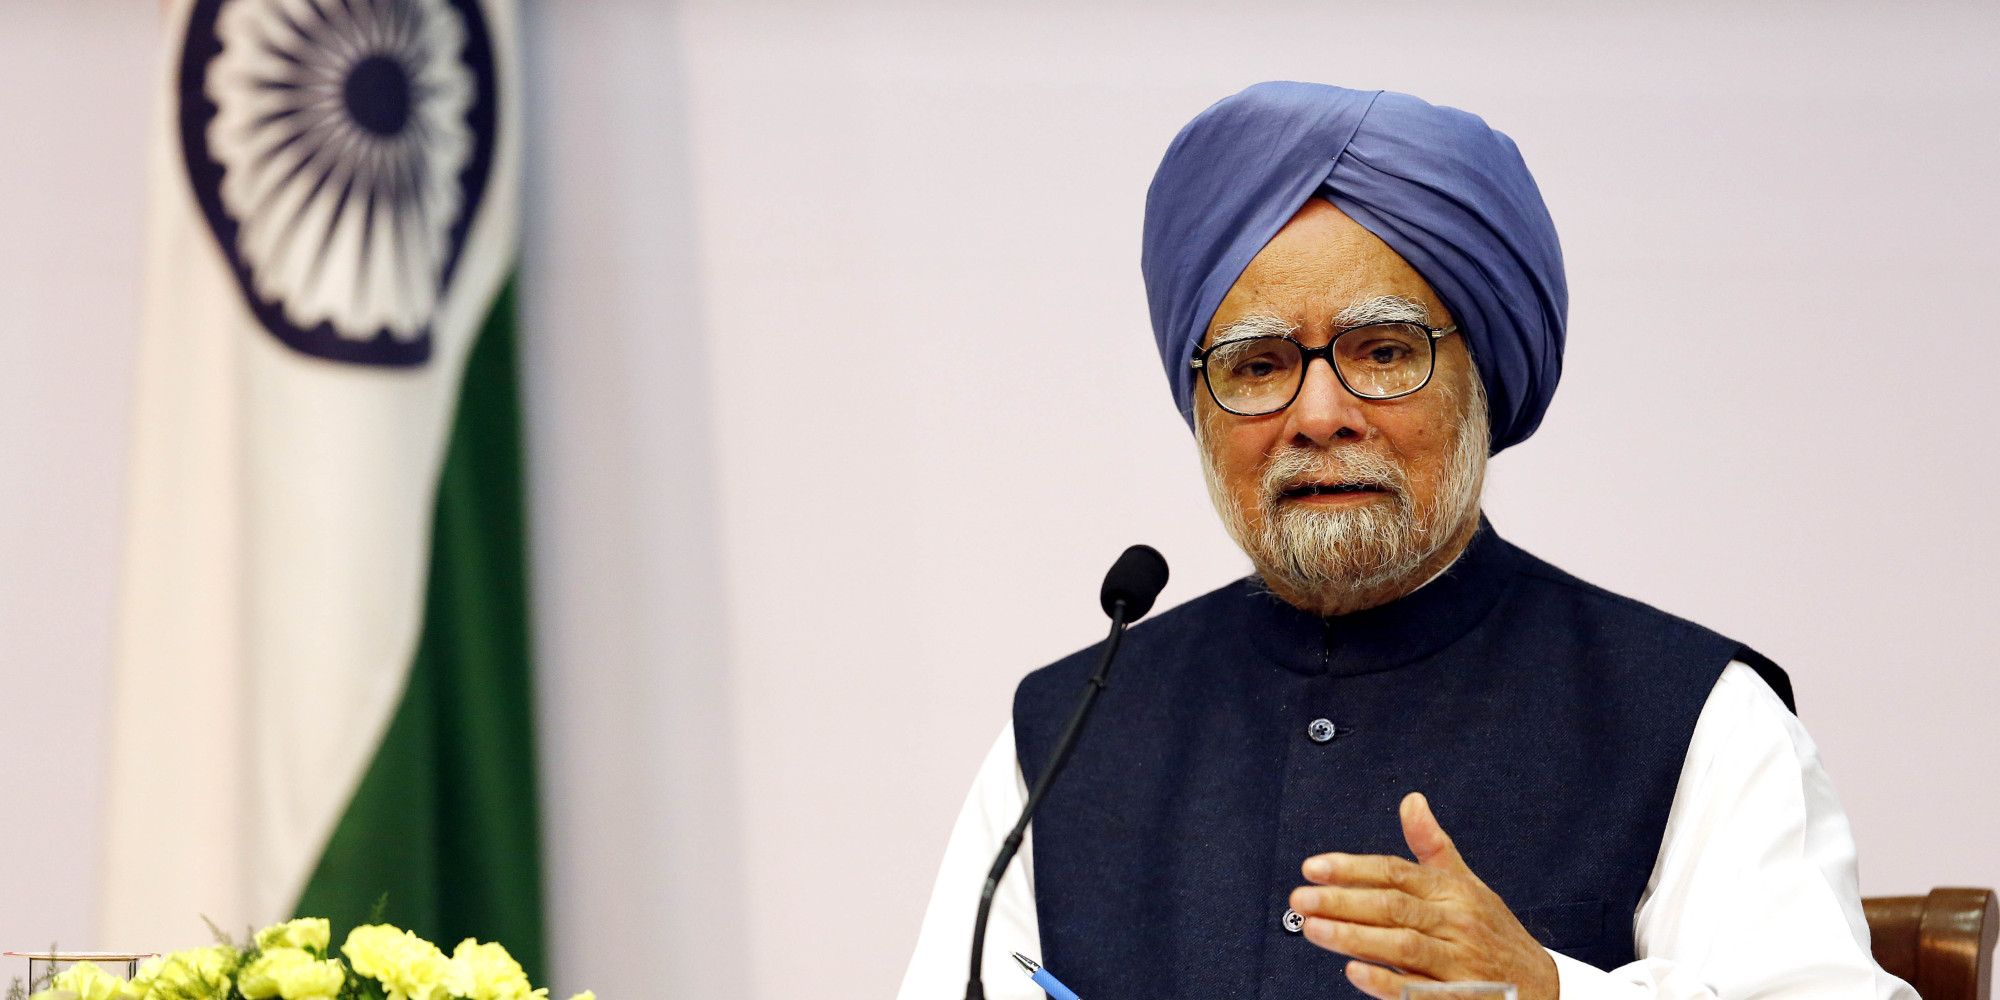 Manmohan Singh, Urjit Patel, RBI, Governer, BJP, Congress, Economy, News Mobile, News Mobile India